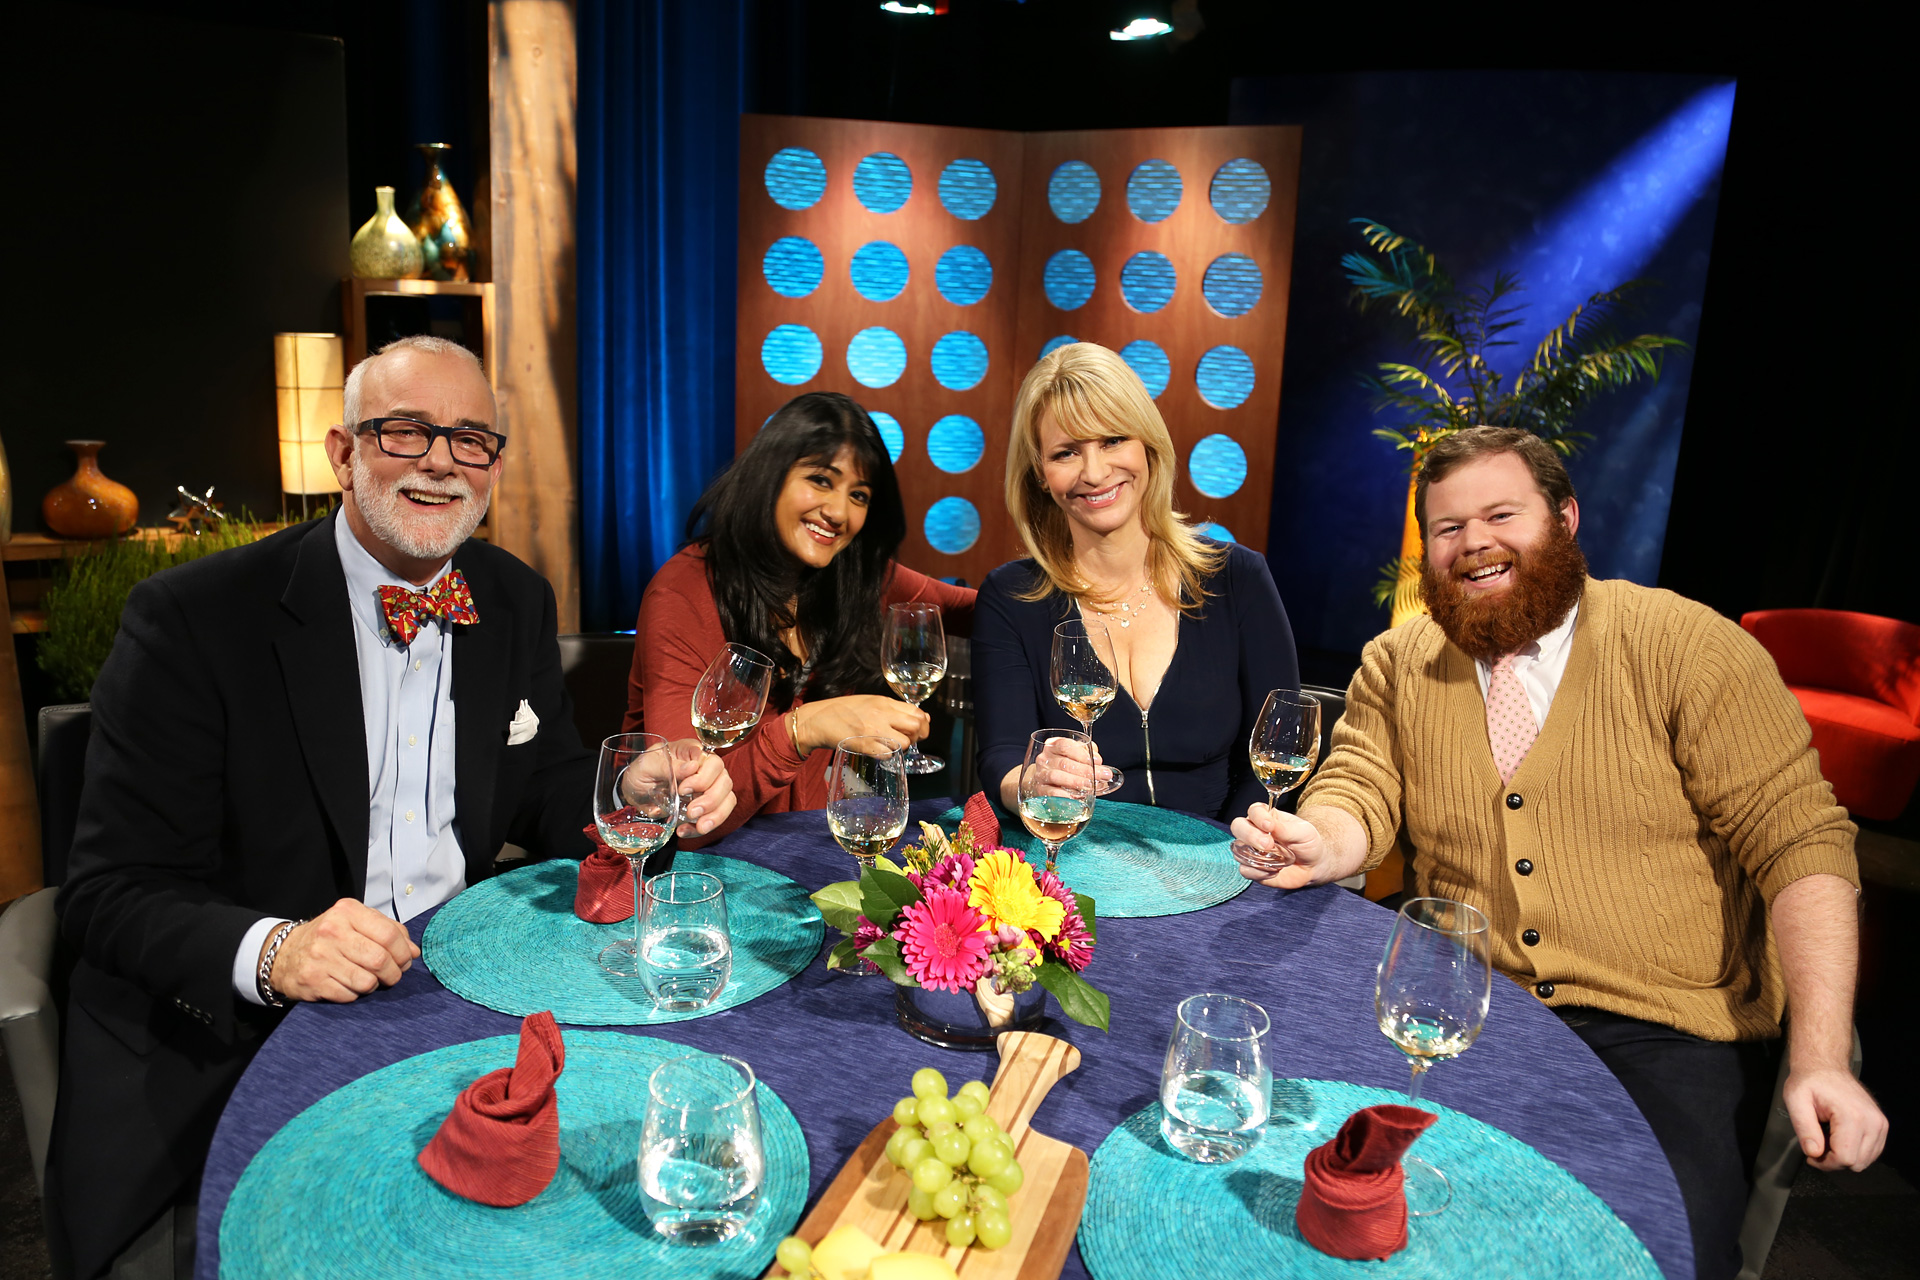 Host Leslie Sbrocco and guests on the set of the episode 4 of season 11.